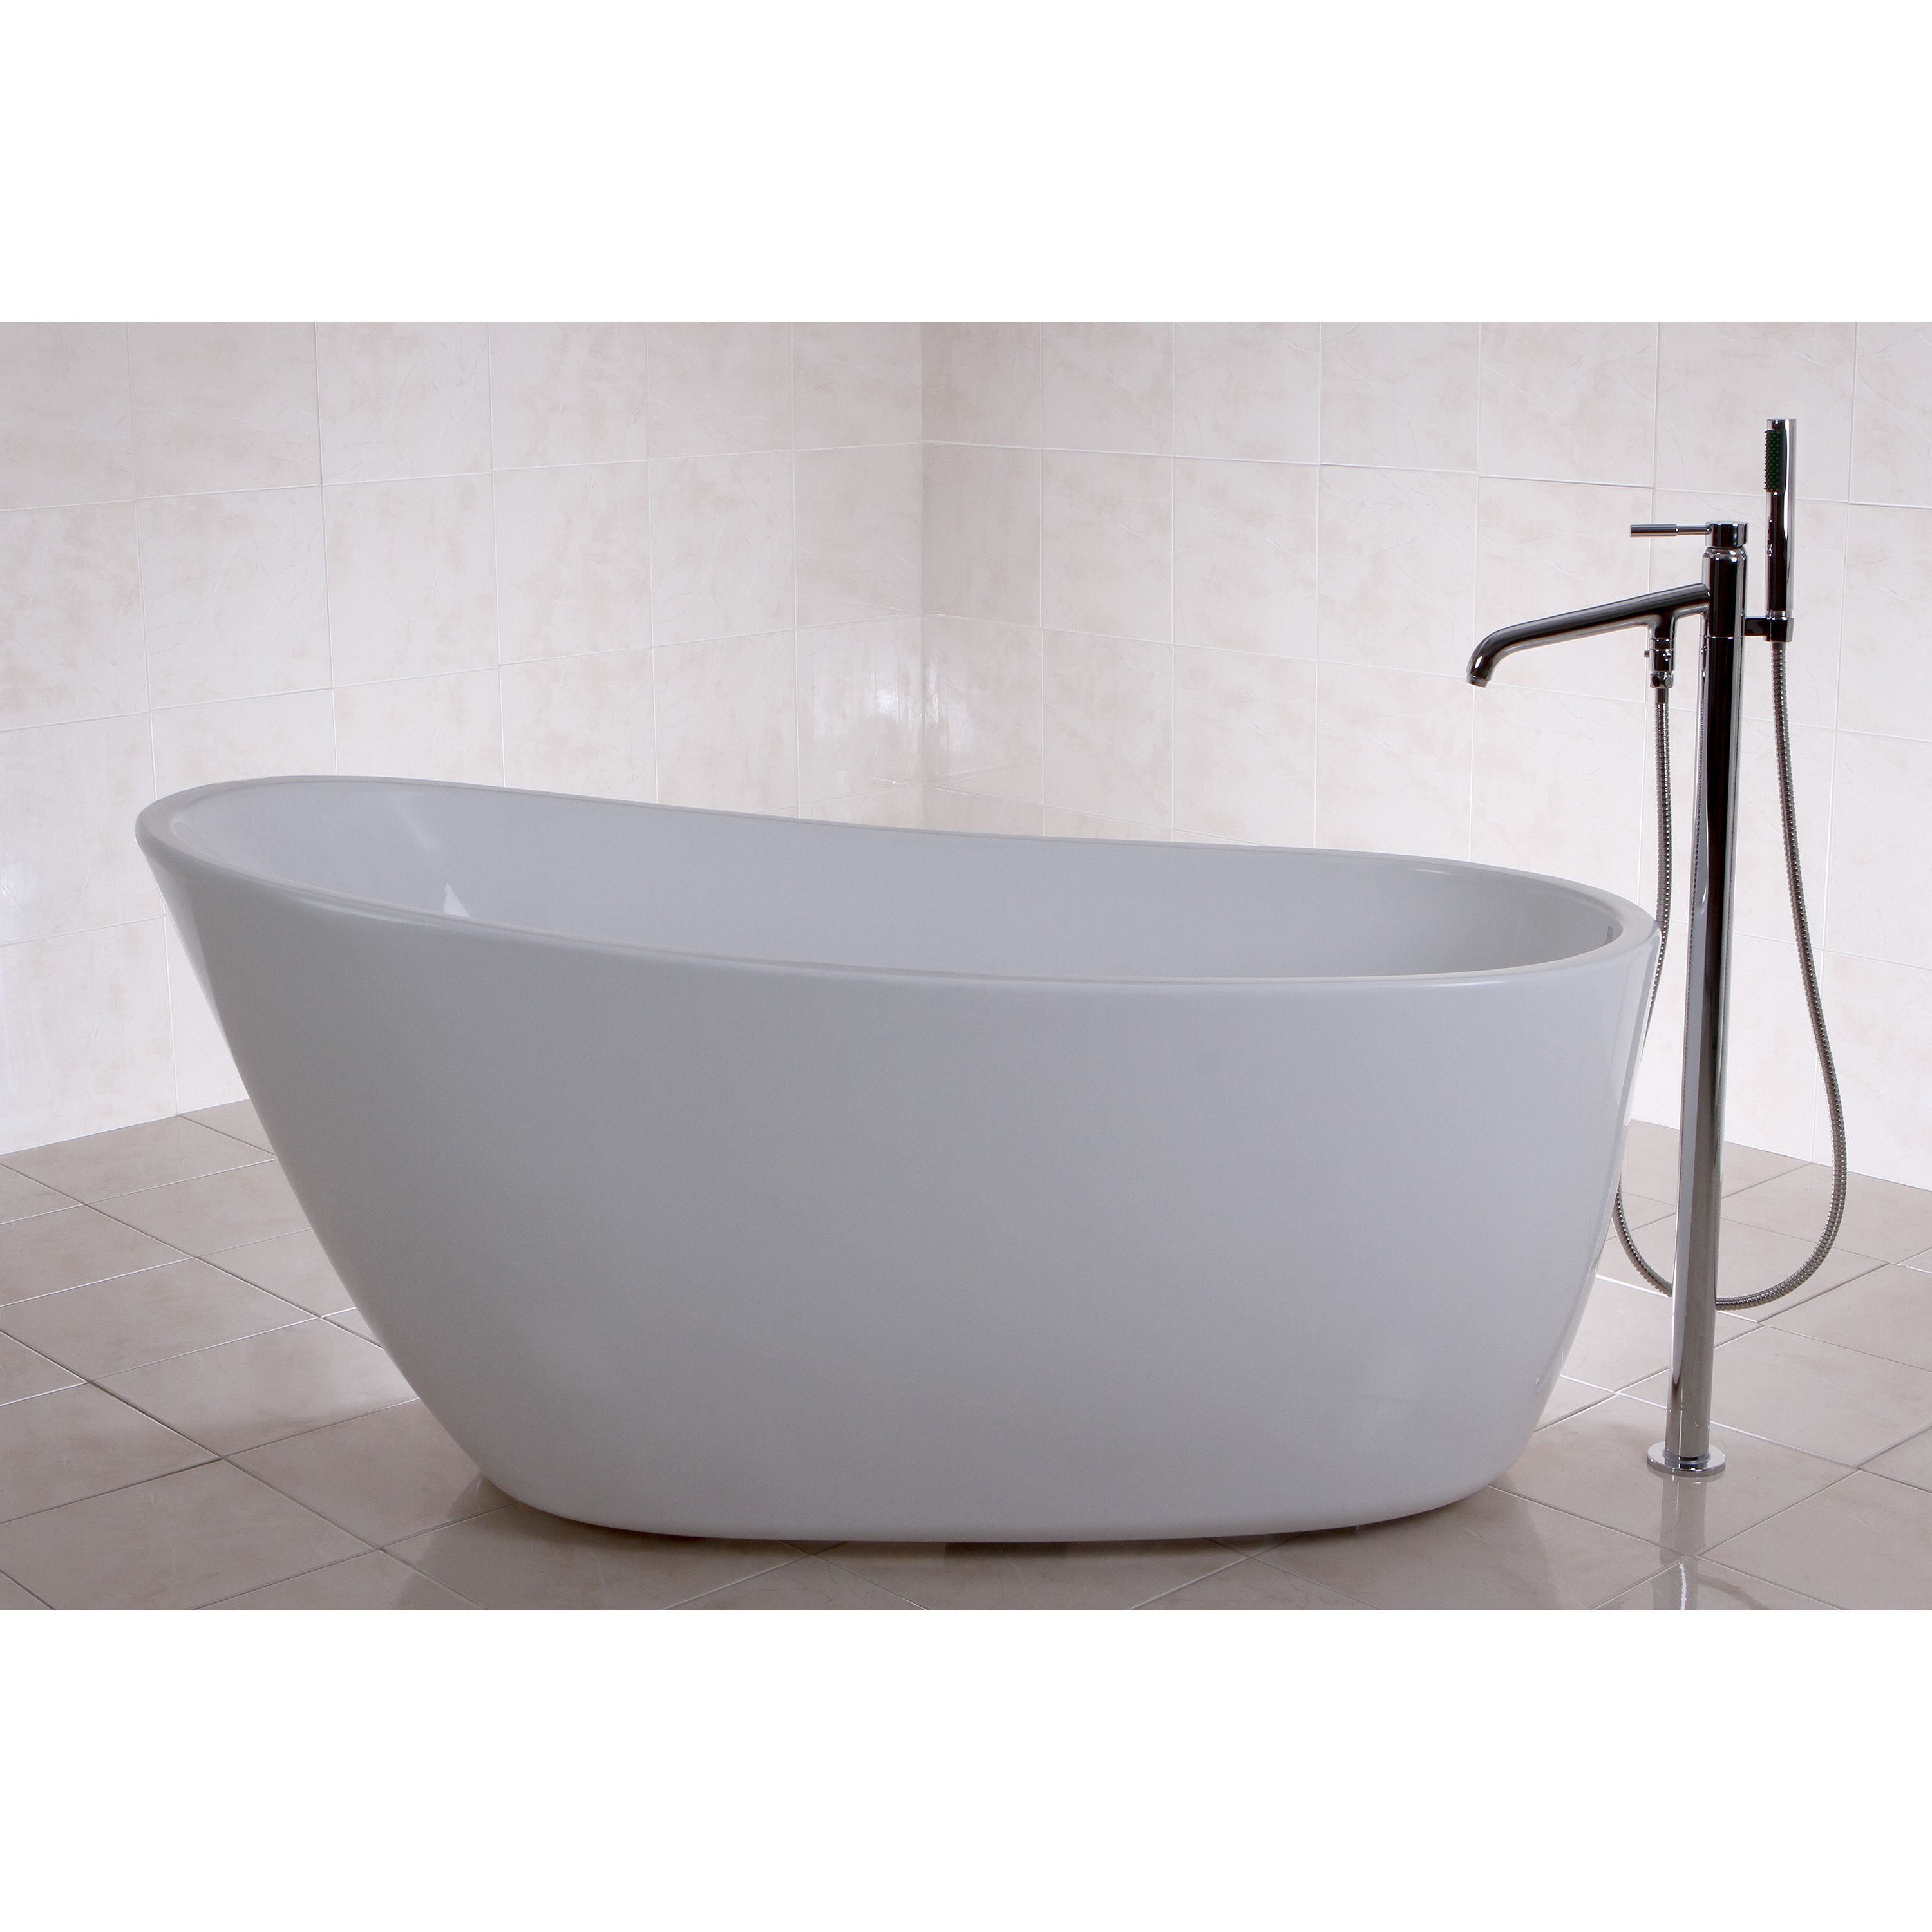 Fusion Freestanding 59 Inch Acrylic Bathtub Bathtub Makeover Bathtub Bathtub Remodel